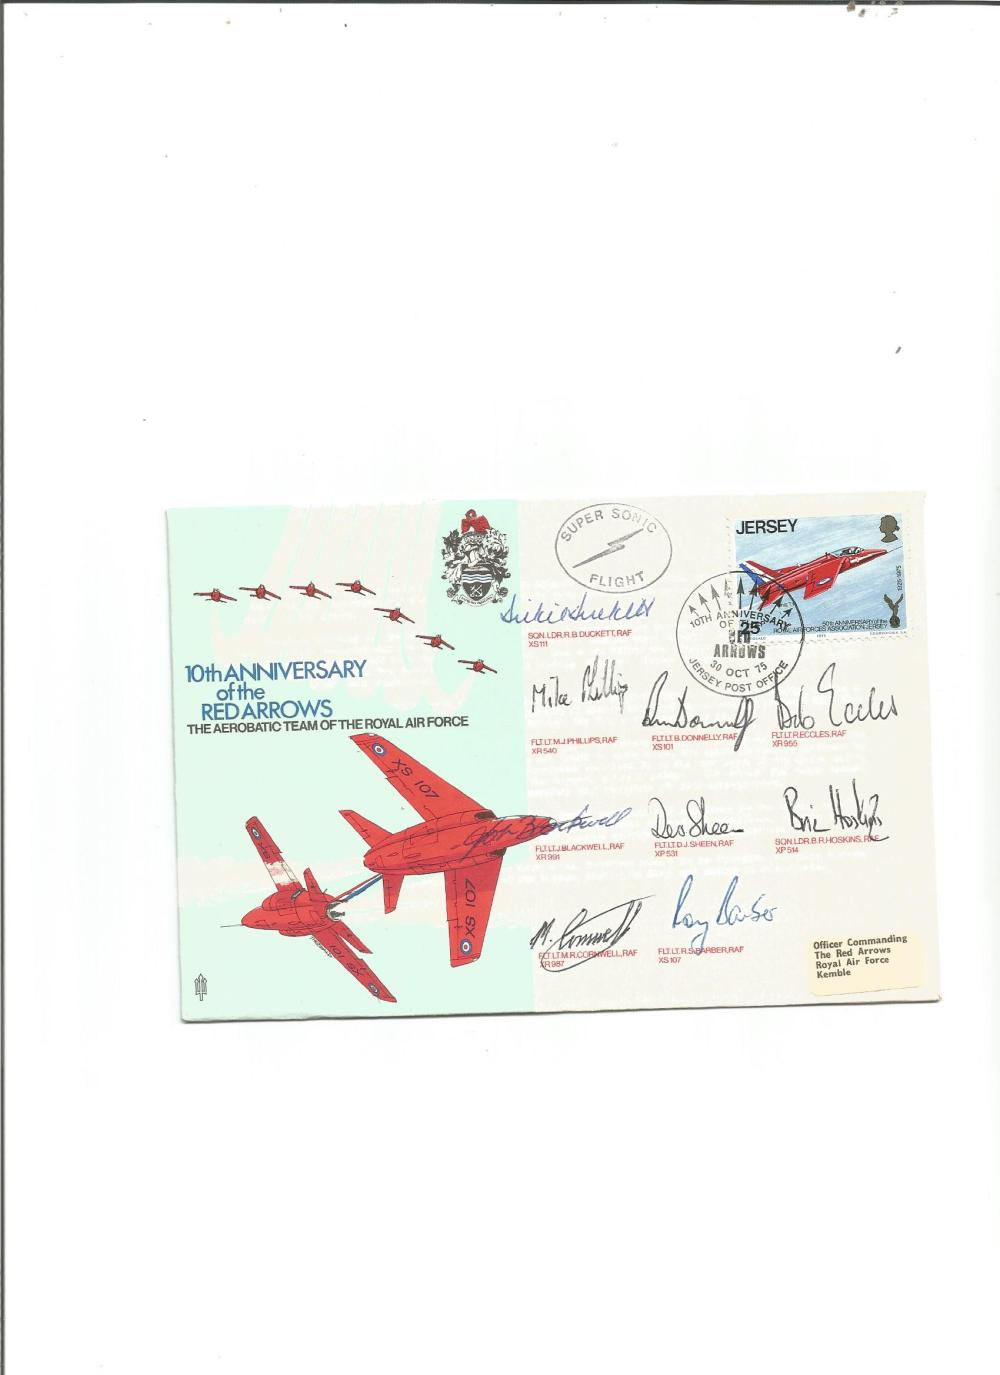 Red Arrows scarce 1975 team signed cover. Flown by Gnat from Jersey to RAF Kemble, signed by all